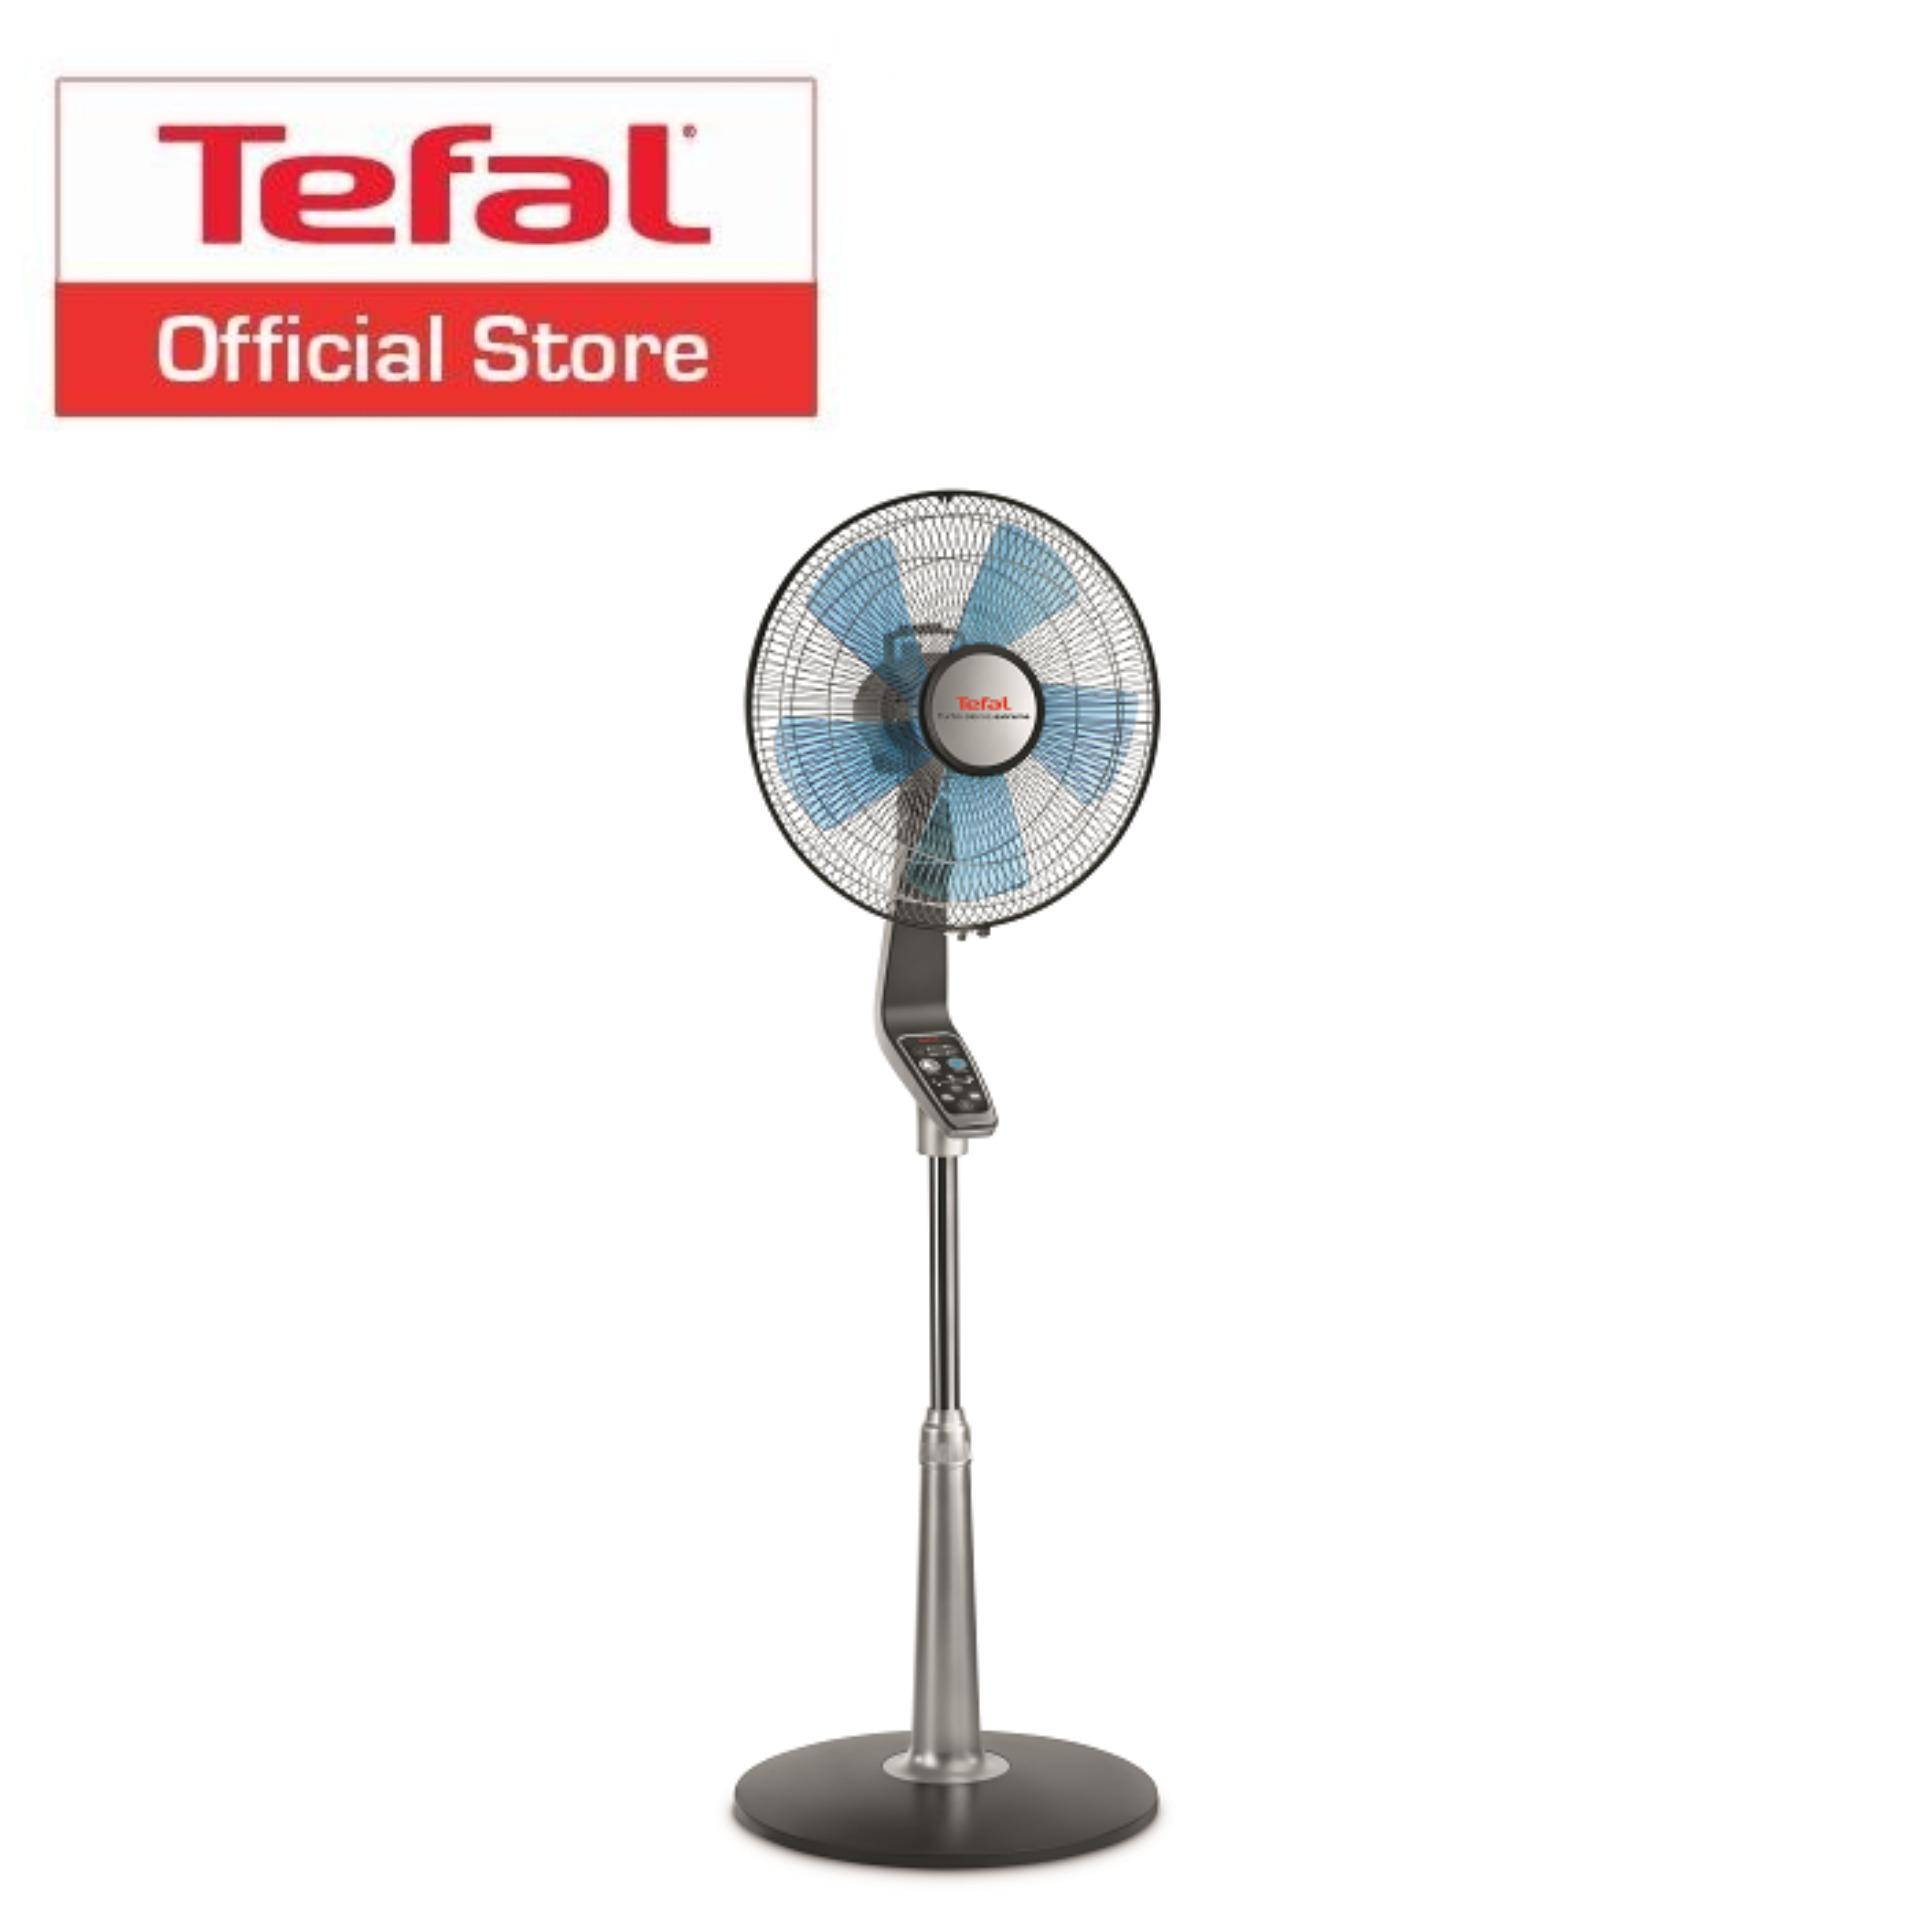 Compare Prices For Tefal Turbo Silence Extreme Remote Stand Fan Vf5670